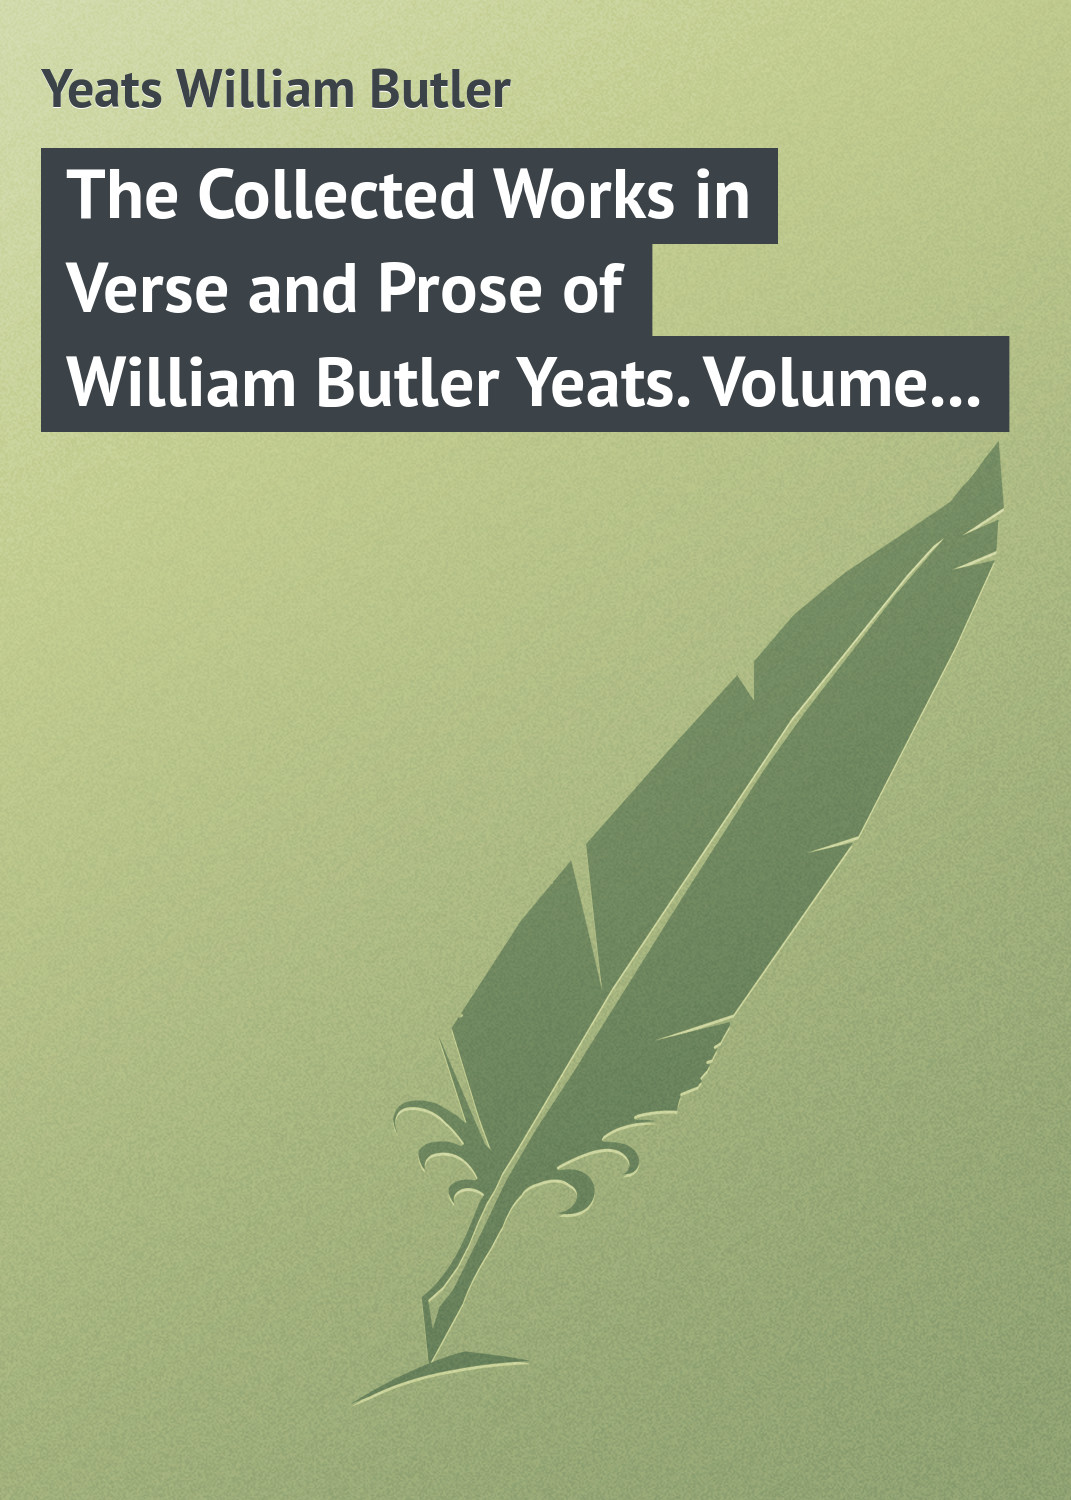 William Butler Yeats The Collected Works in Verse and Prose of William Butler Yeats. Volume 8 of 8. Discoveries. Edmund Spenser. Poetry and Tradition; and Other Essays. Bibliography форма для запекания gipfel amey 3812